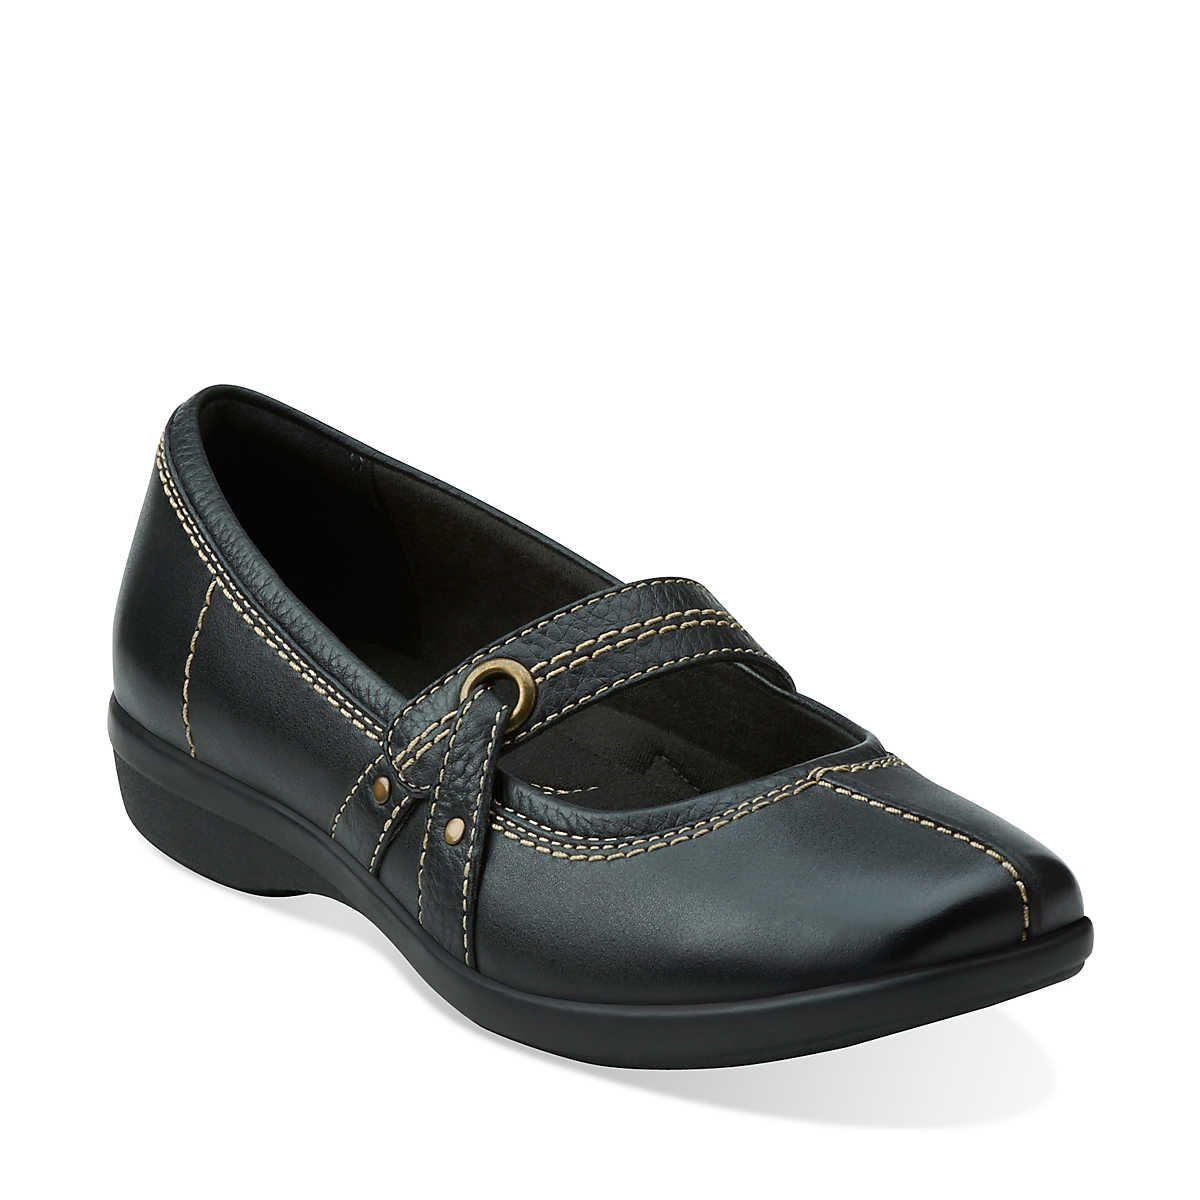 5673ac77057e0 Discover Clarks Shoes and Boots online. We have many different styles for  men